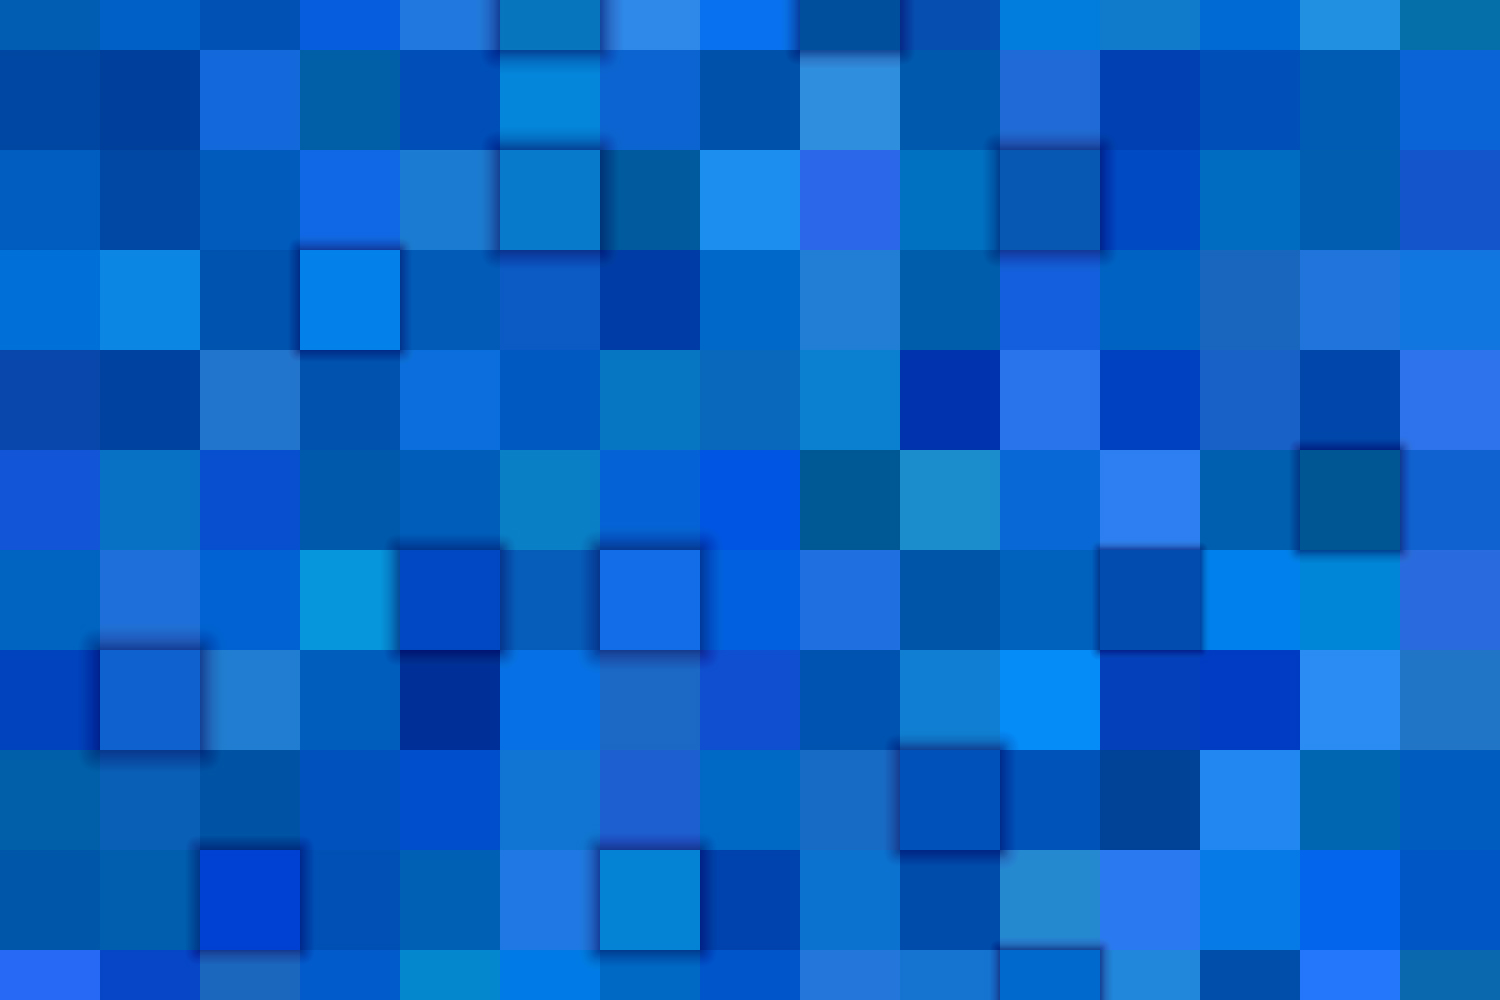 8 Blue 3D Square Backgrounds (AI, EPS, JPG 5000x5000) example image 3